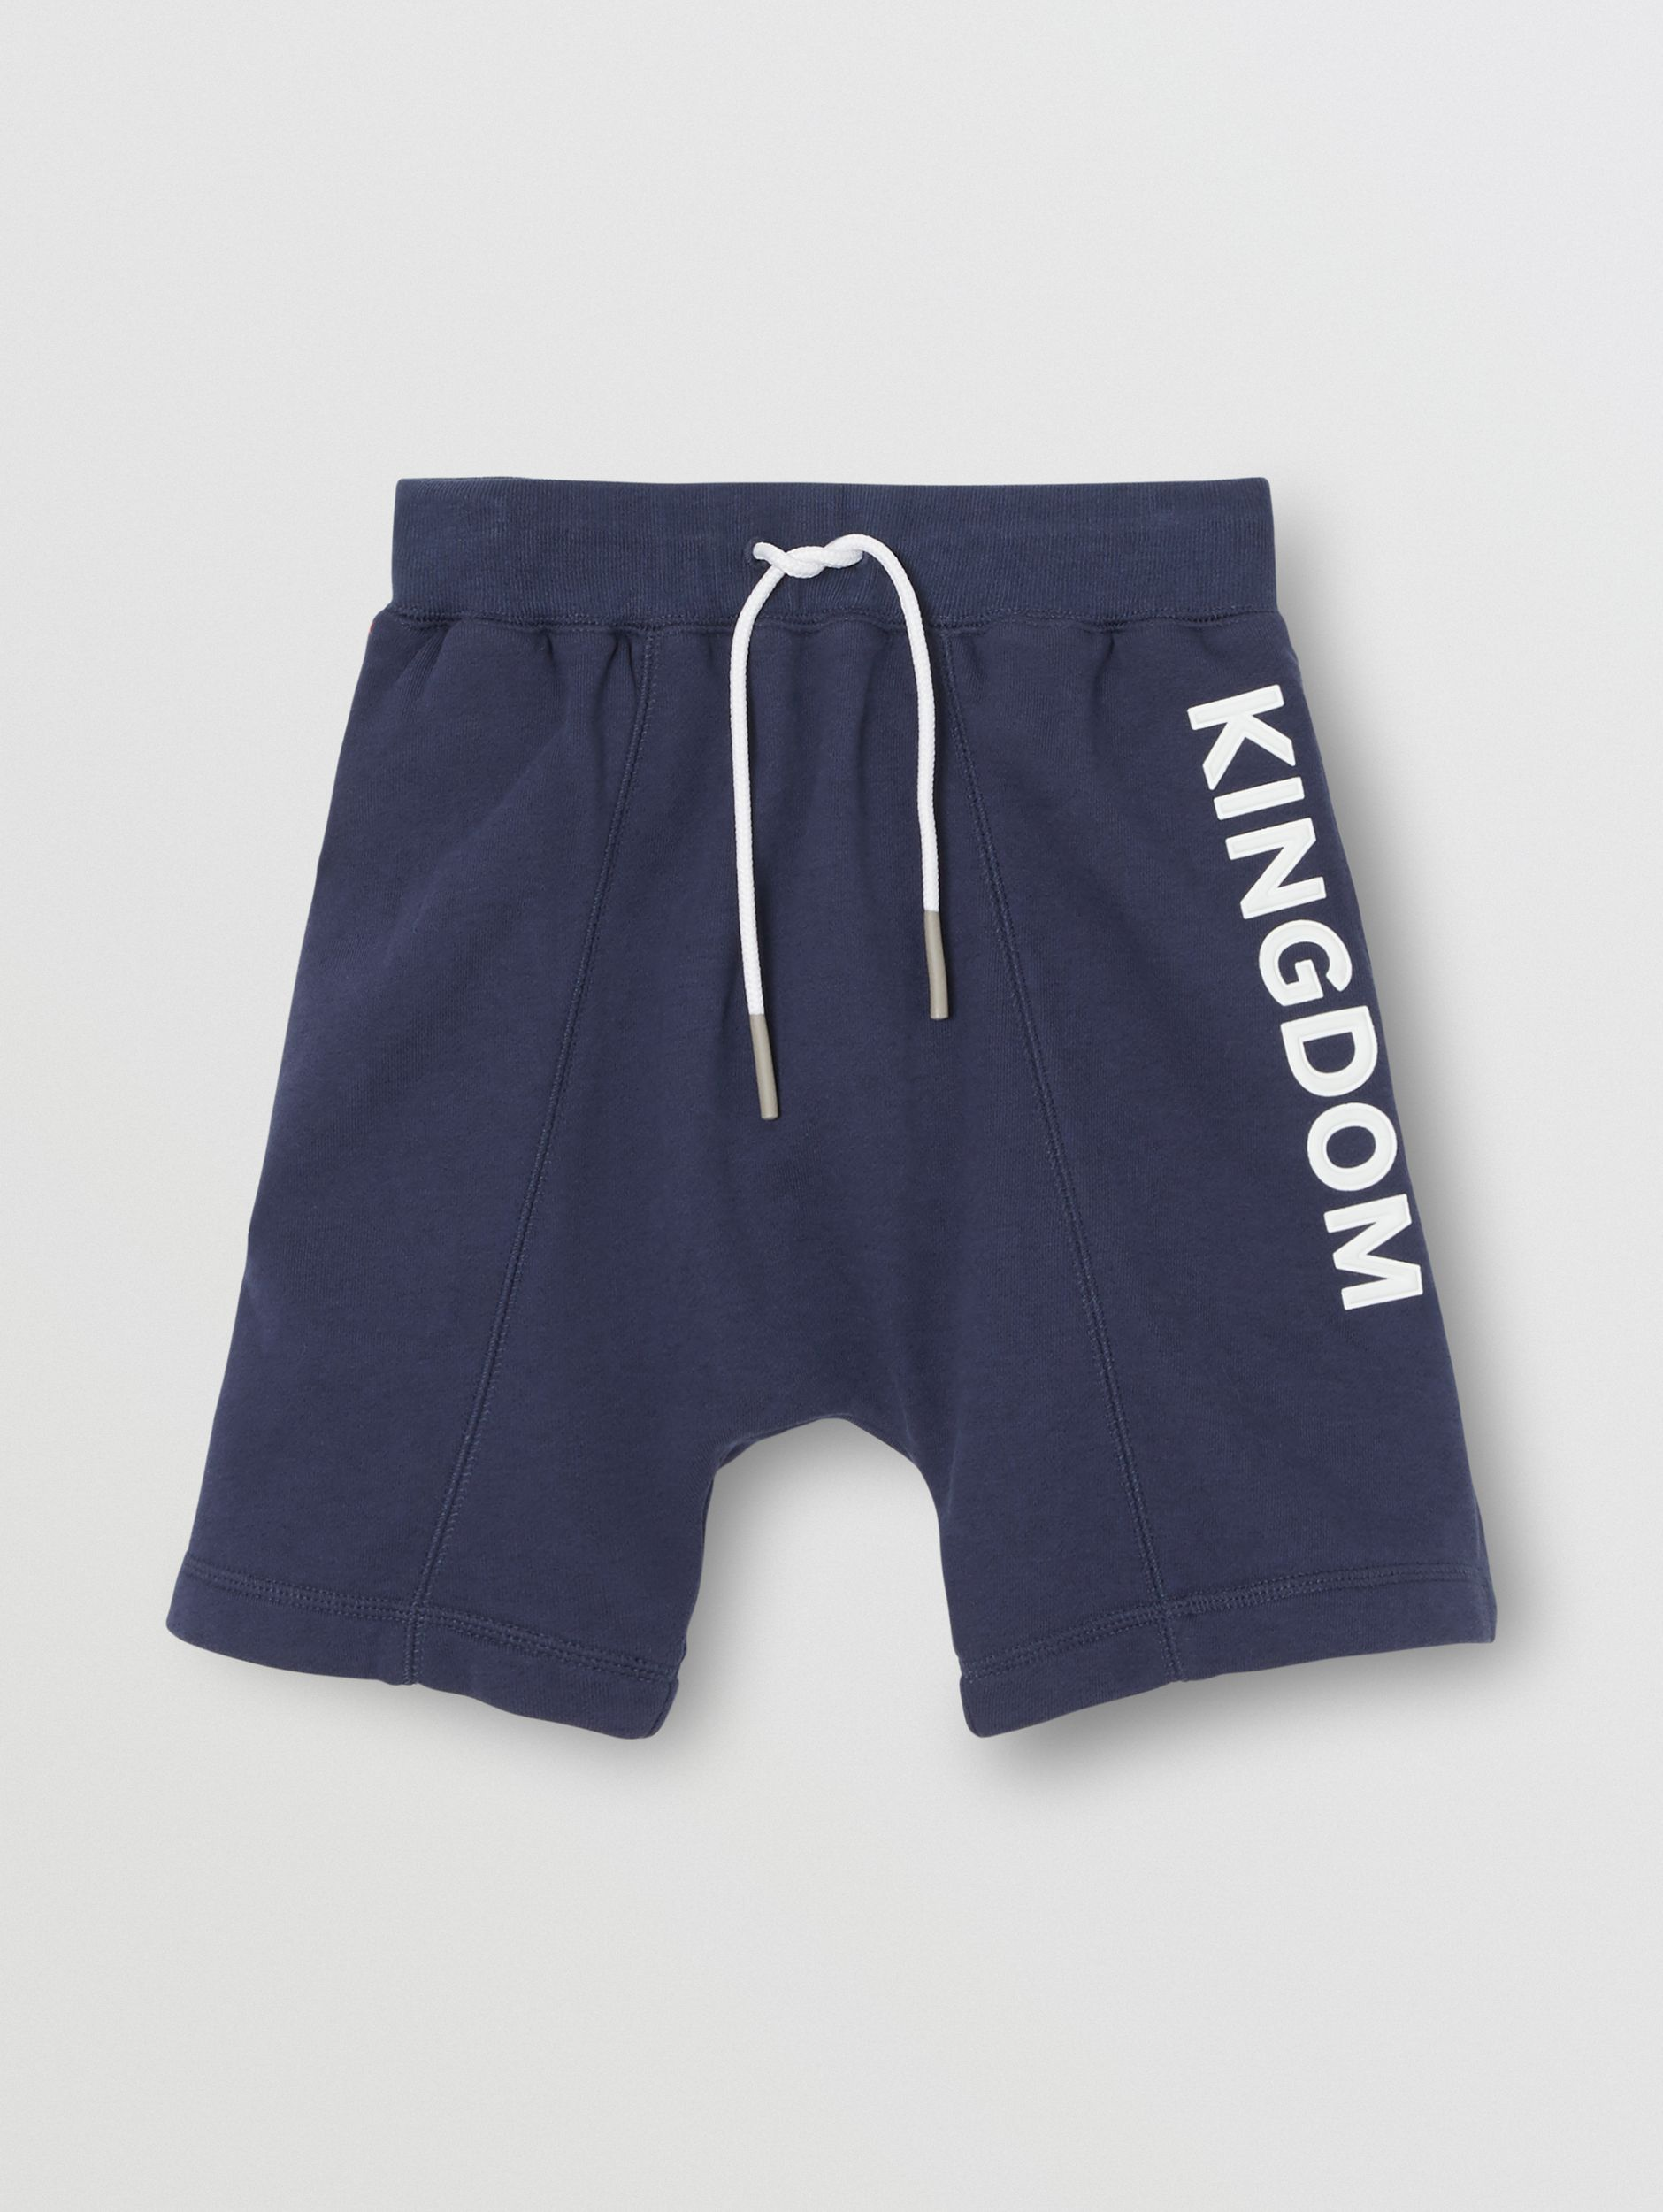 Kingdom Motif Cotton Drawcord Shorts in Slate Blue Melange | Burberry United Kingdom - 1